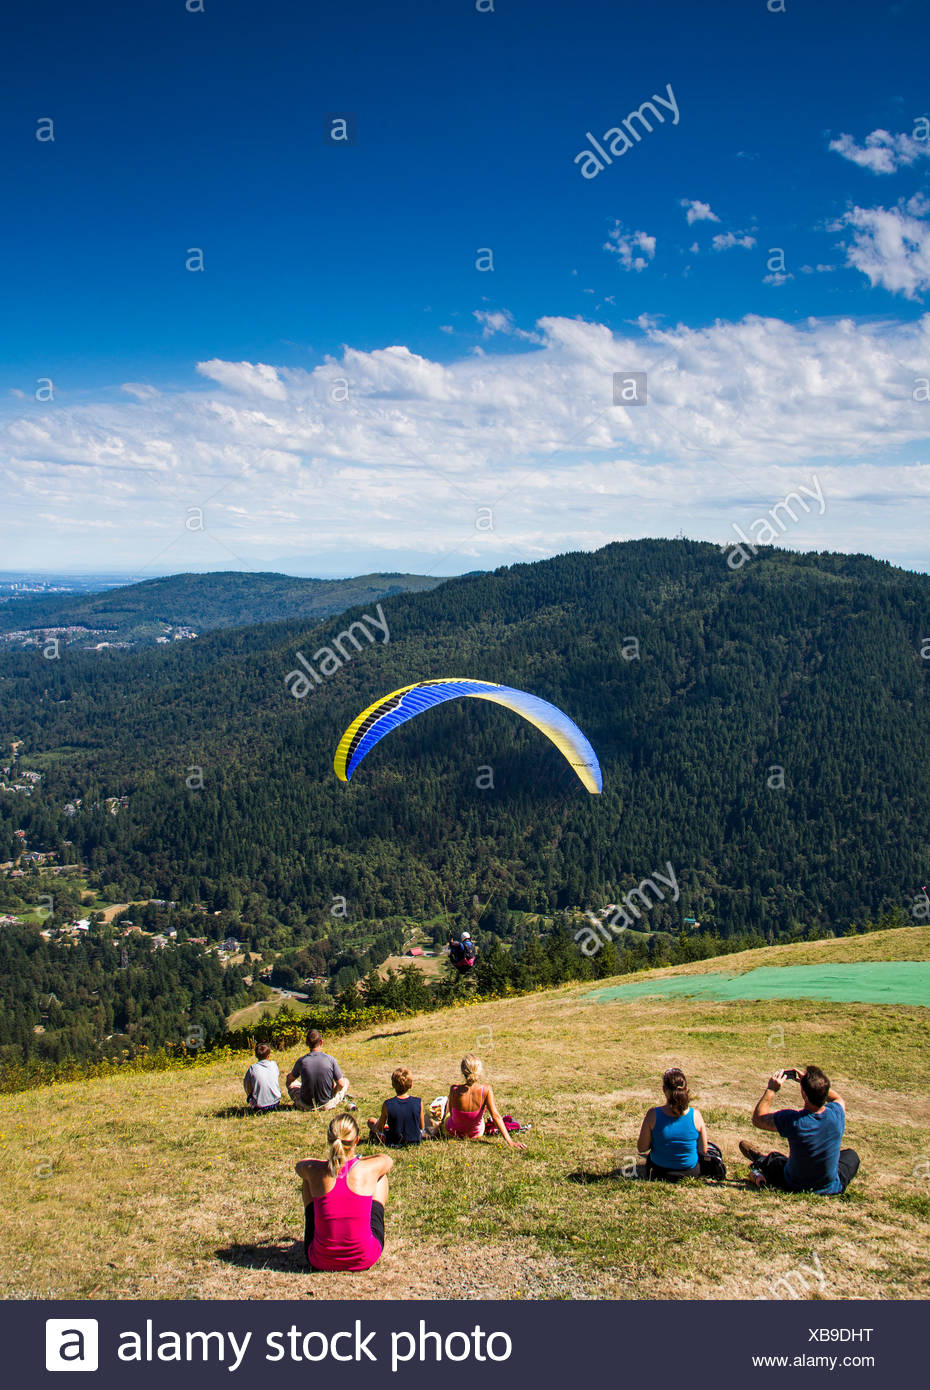 Poo Poo Point is a tourist attraction near Issaquah, WA where hang gliders launch into the clear sky above a thick green forest. - Stock Image